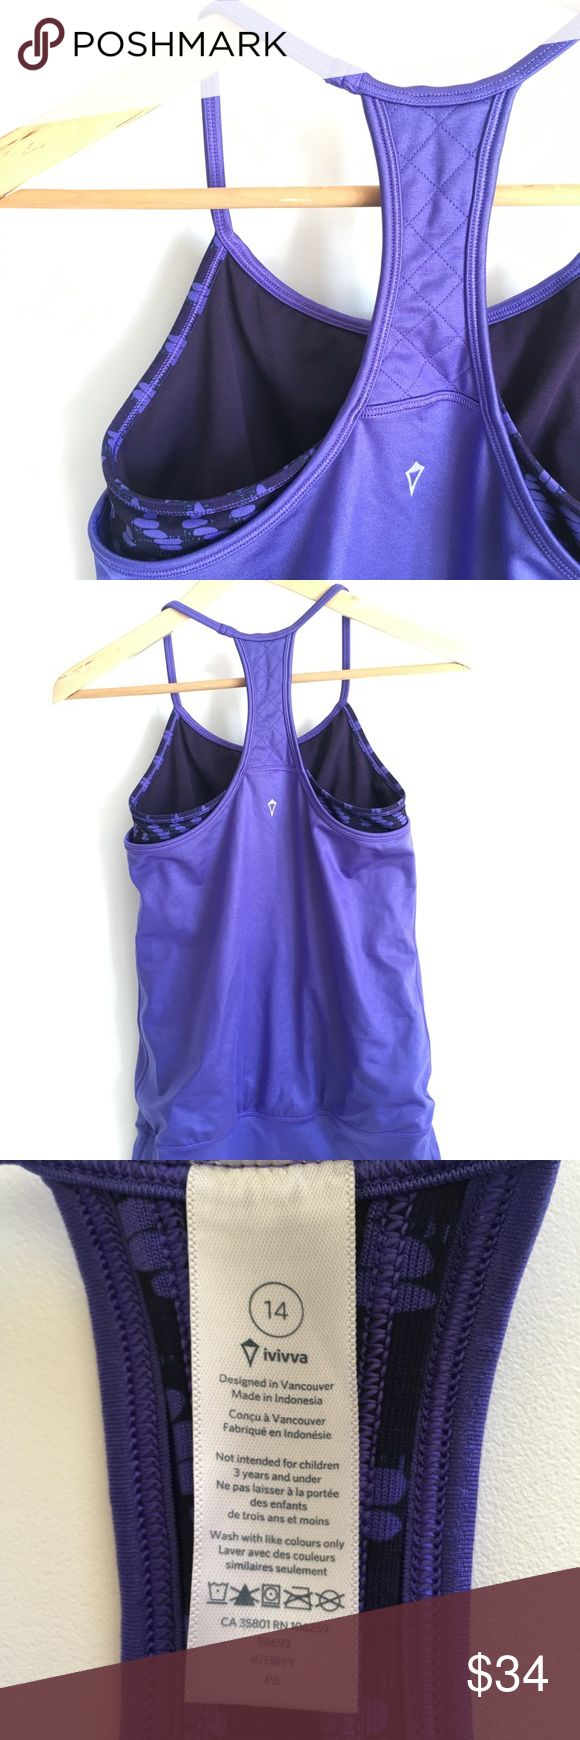 Ivivva Girls Purple Double-Dutch Tank Top Ivivva by lululemon double Dutch tank  Girls Sz 14  preowned ; Please refer to pictures. Double layer tank offers you coverage when you work hard at exceeding your athletic goals! Top layer in Mesh fabric is lightweight and sweat–wicking Added Lycra® fibre for serious stretch and long–term shape retention Tight–fitted body will move with you throughout the day COOLMAX® liner wicks sweat away from your body.  Racerback shape allows for full range of…